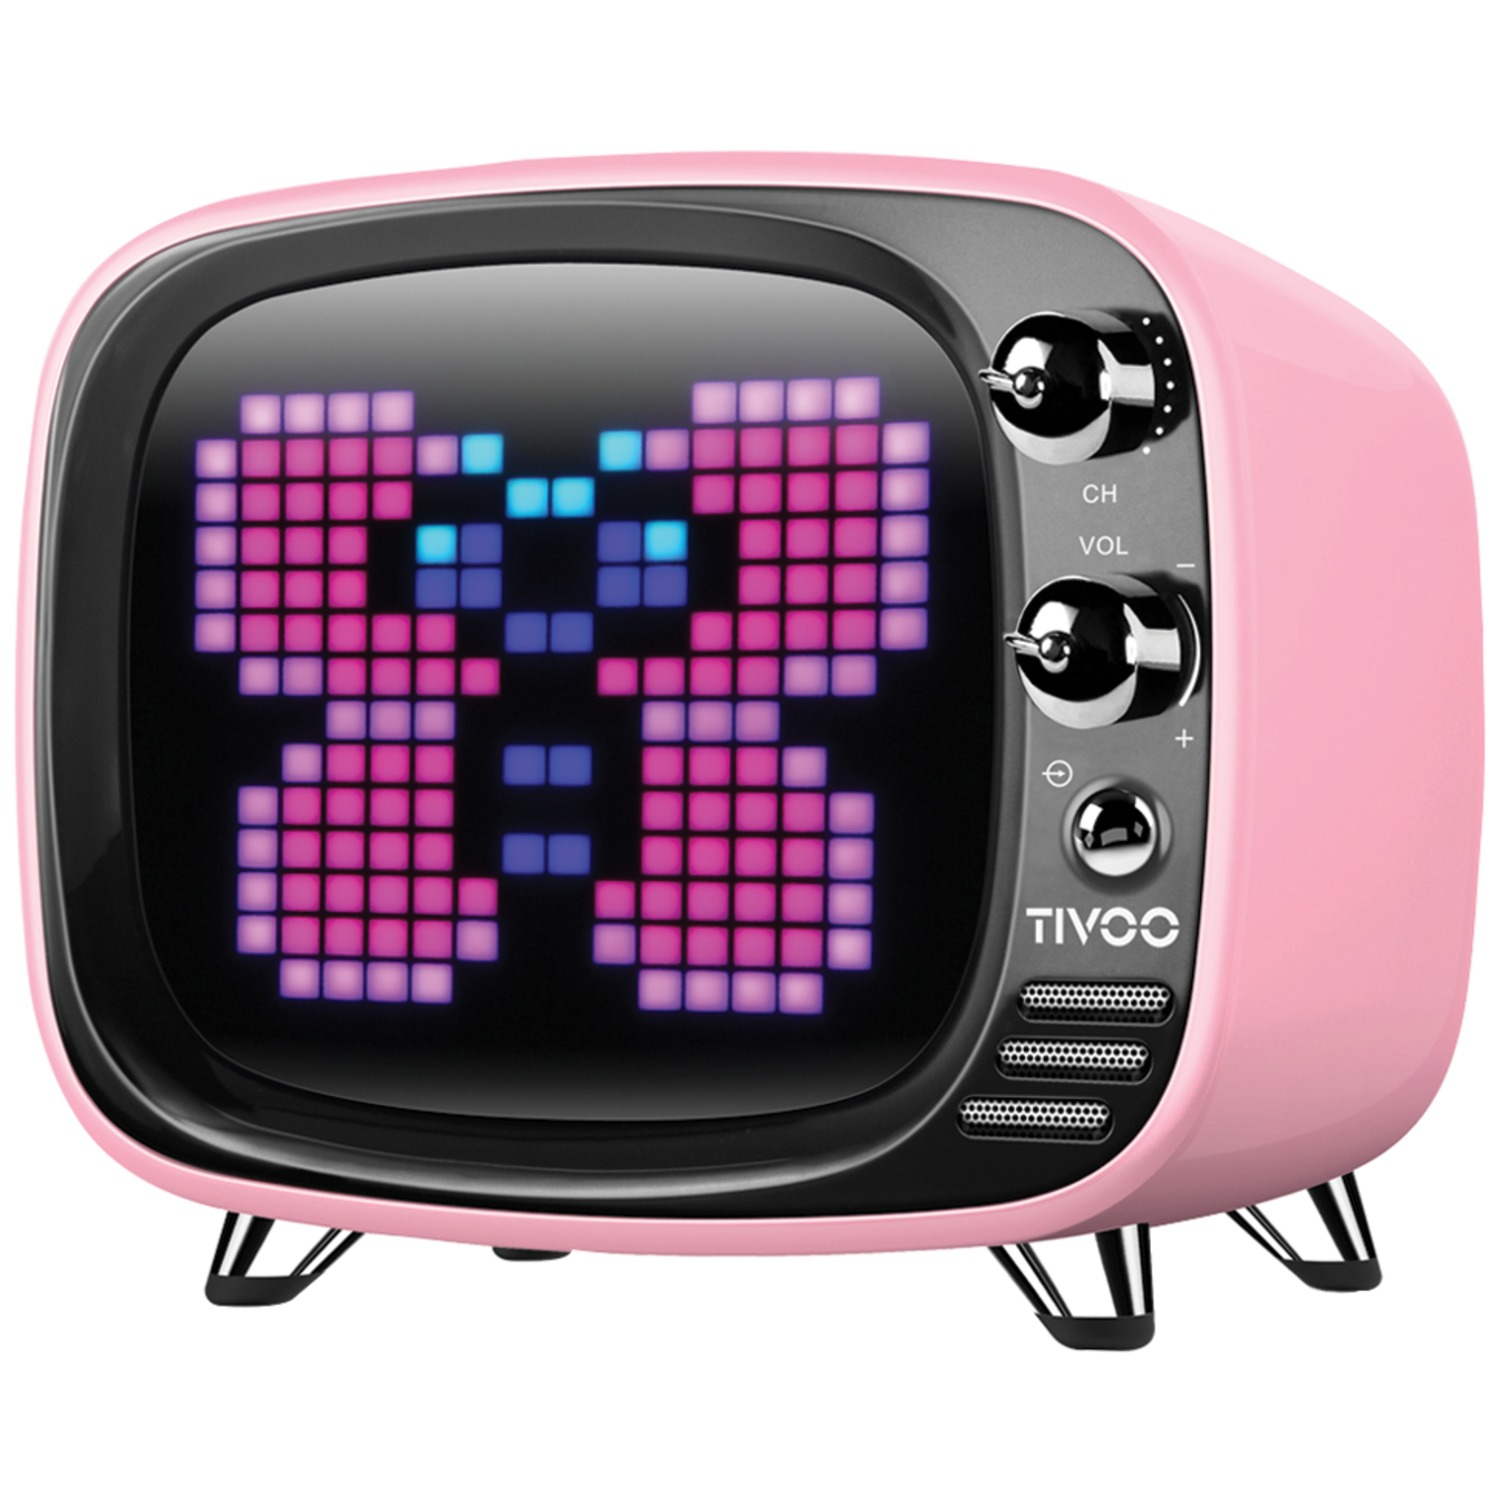 Divoom 90100058067 Tivoo Pixel Art Bluetooth Speaker (Midnight Black)